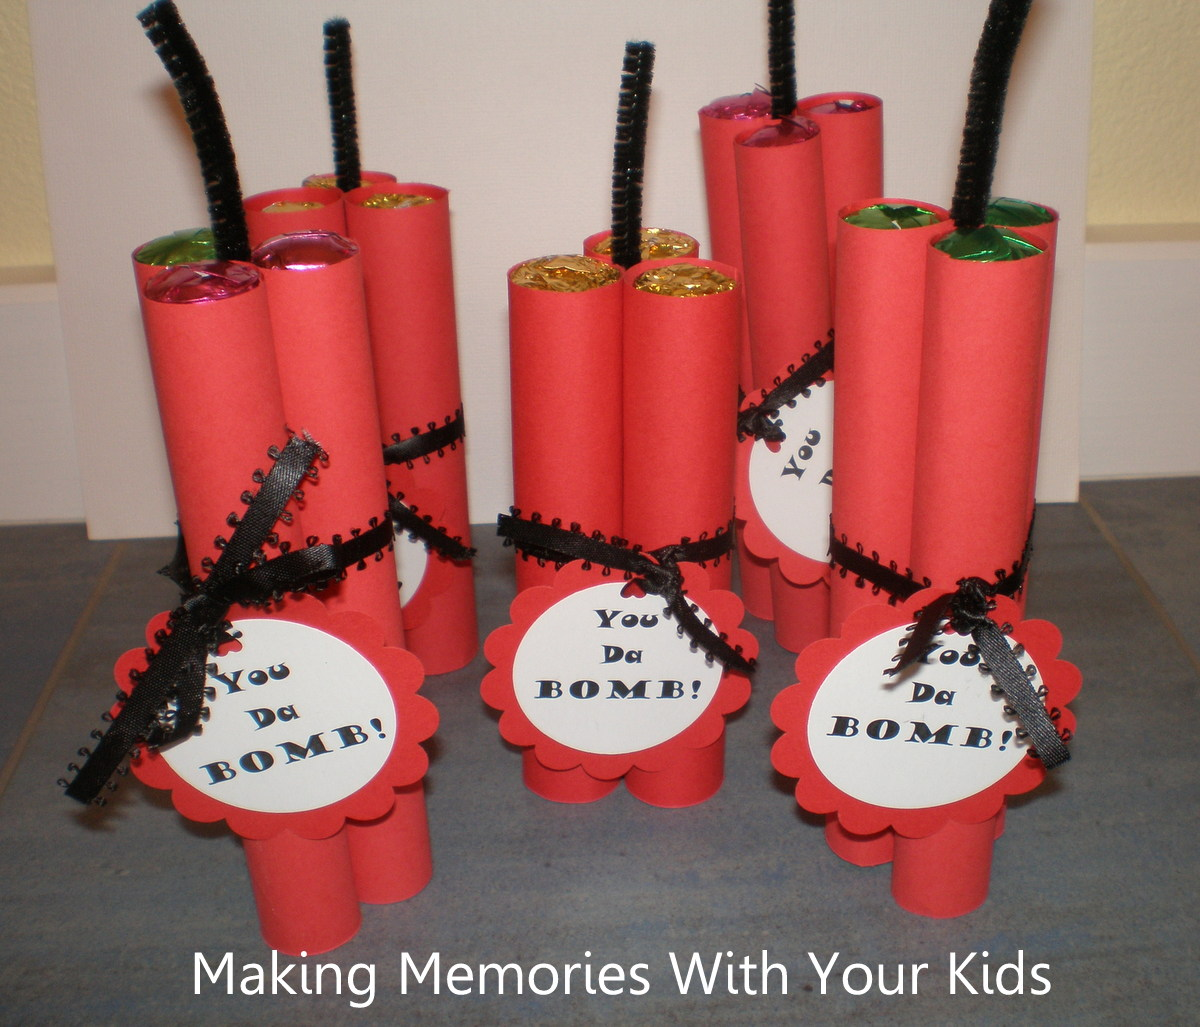 You Da Bomb Candy Valentine - Making Memories With Your Kids